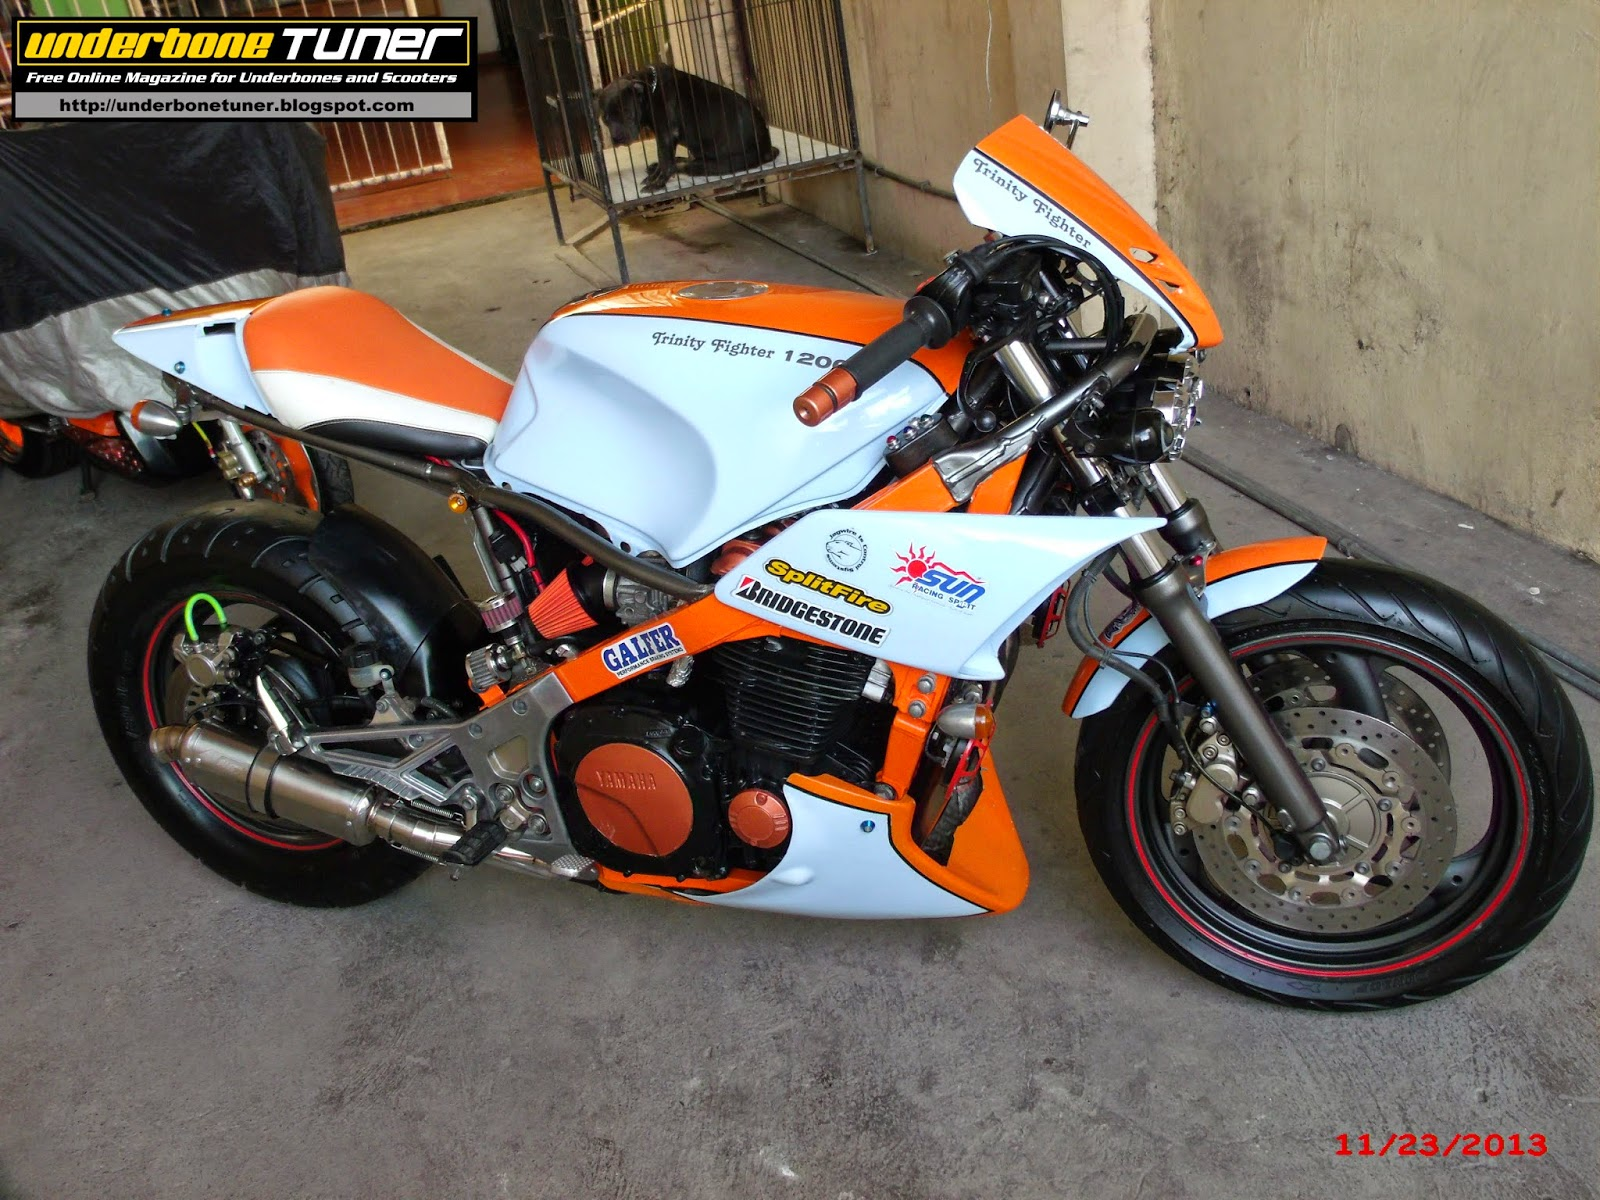 Underbone Tuner The Yamaha Fj1200 Street Fighter By